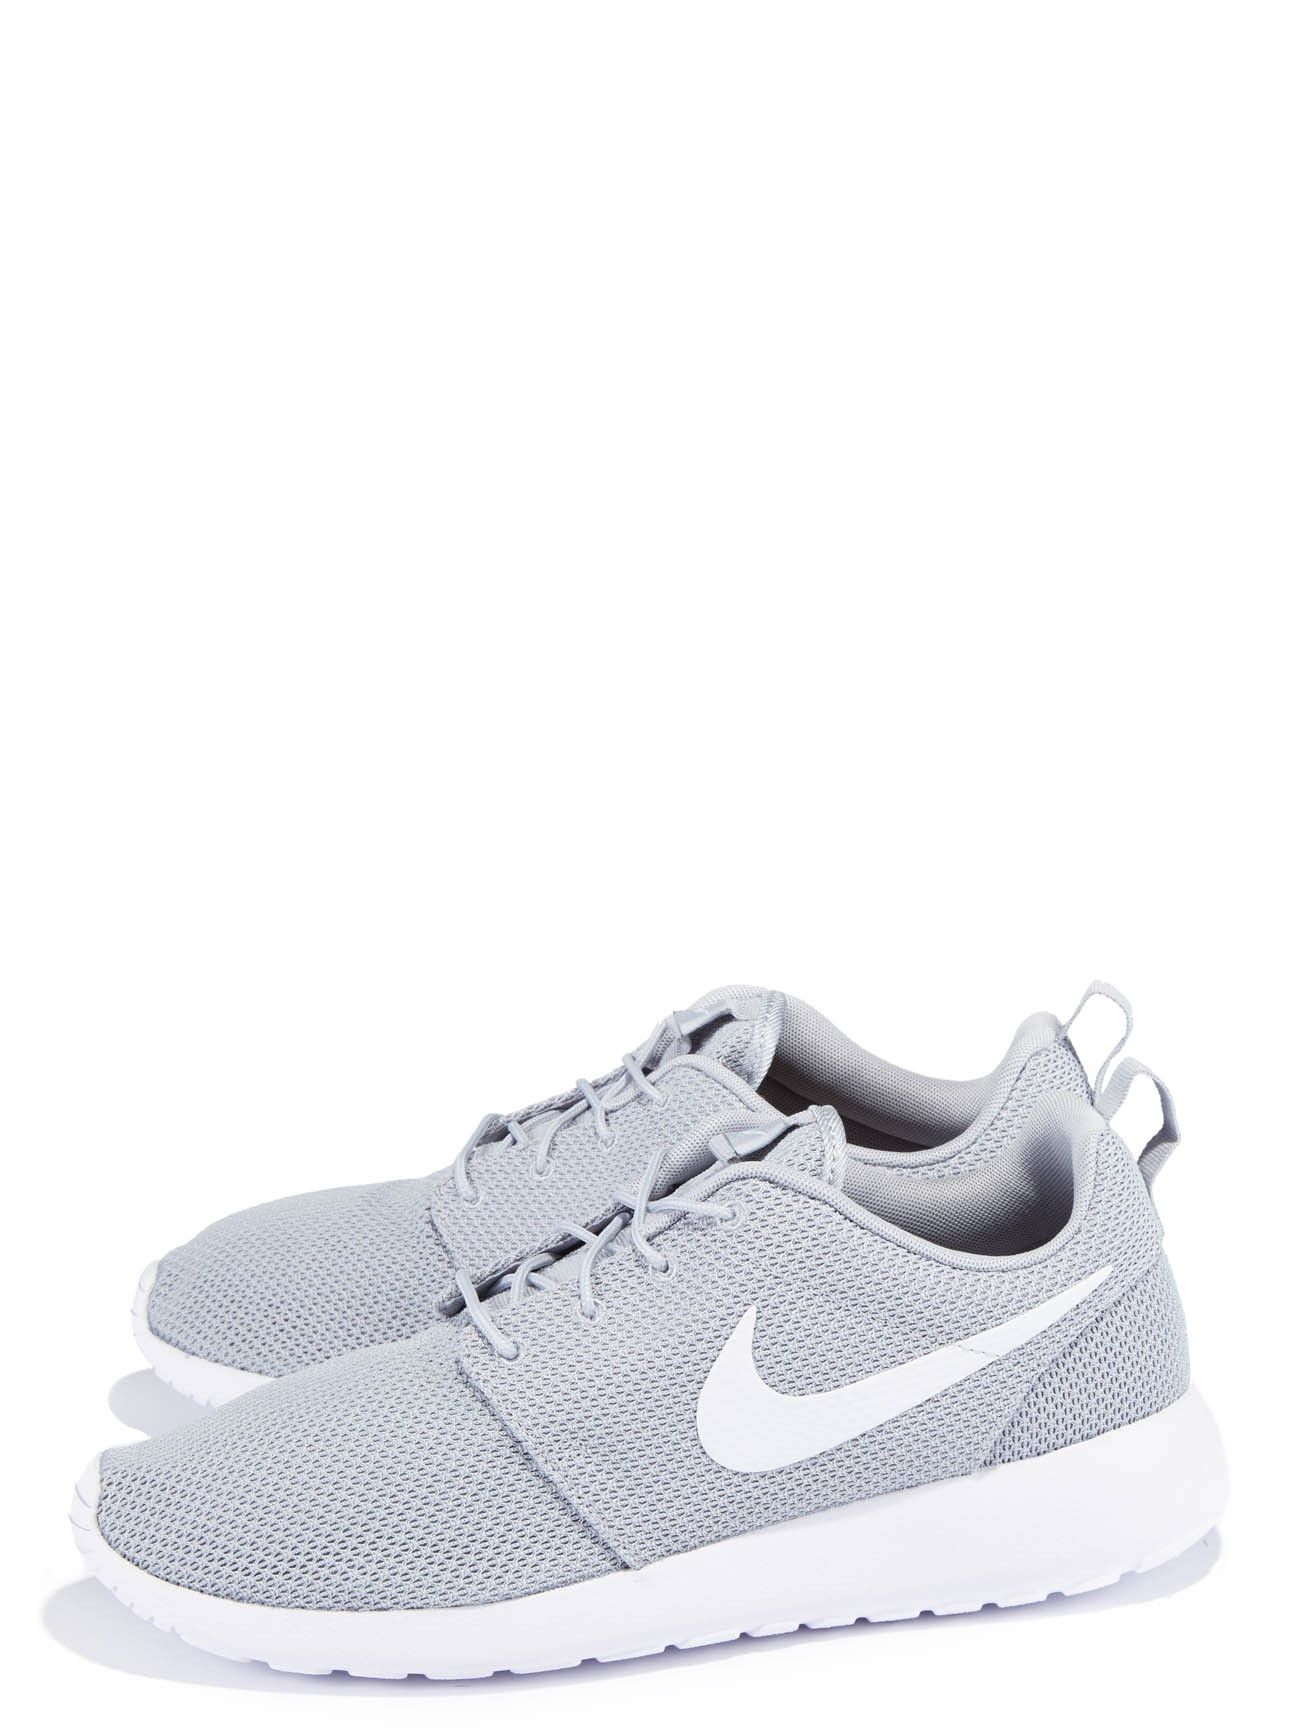 Nike Roshe Run Sneakers - Nike's Roshe Run sneaker is clean in design with its minimal features. Contrast front panels on front. Premium cushioning makes the shoe not only super comfortable but very lightweight.